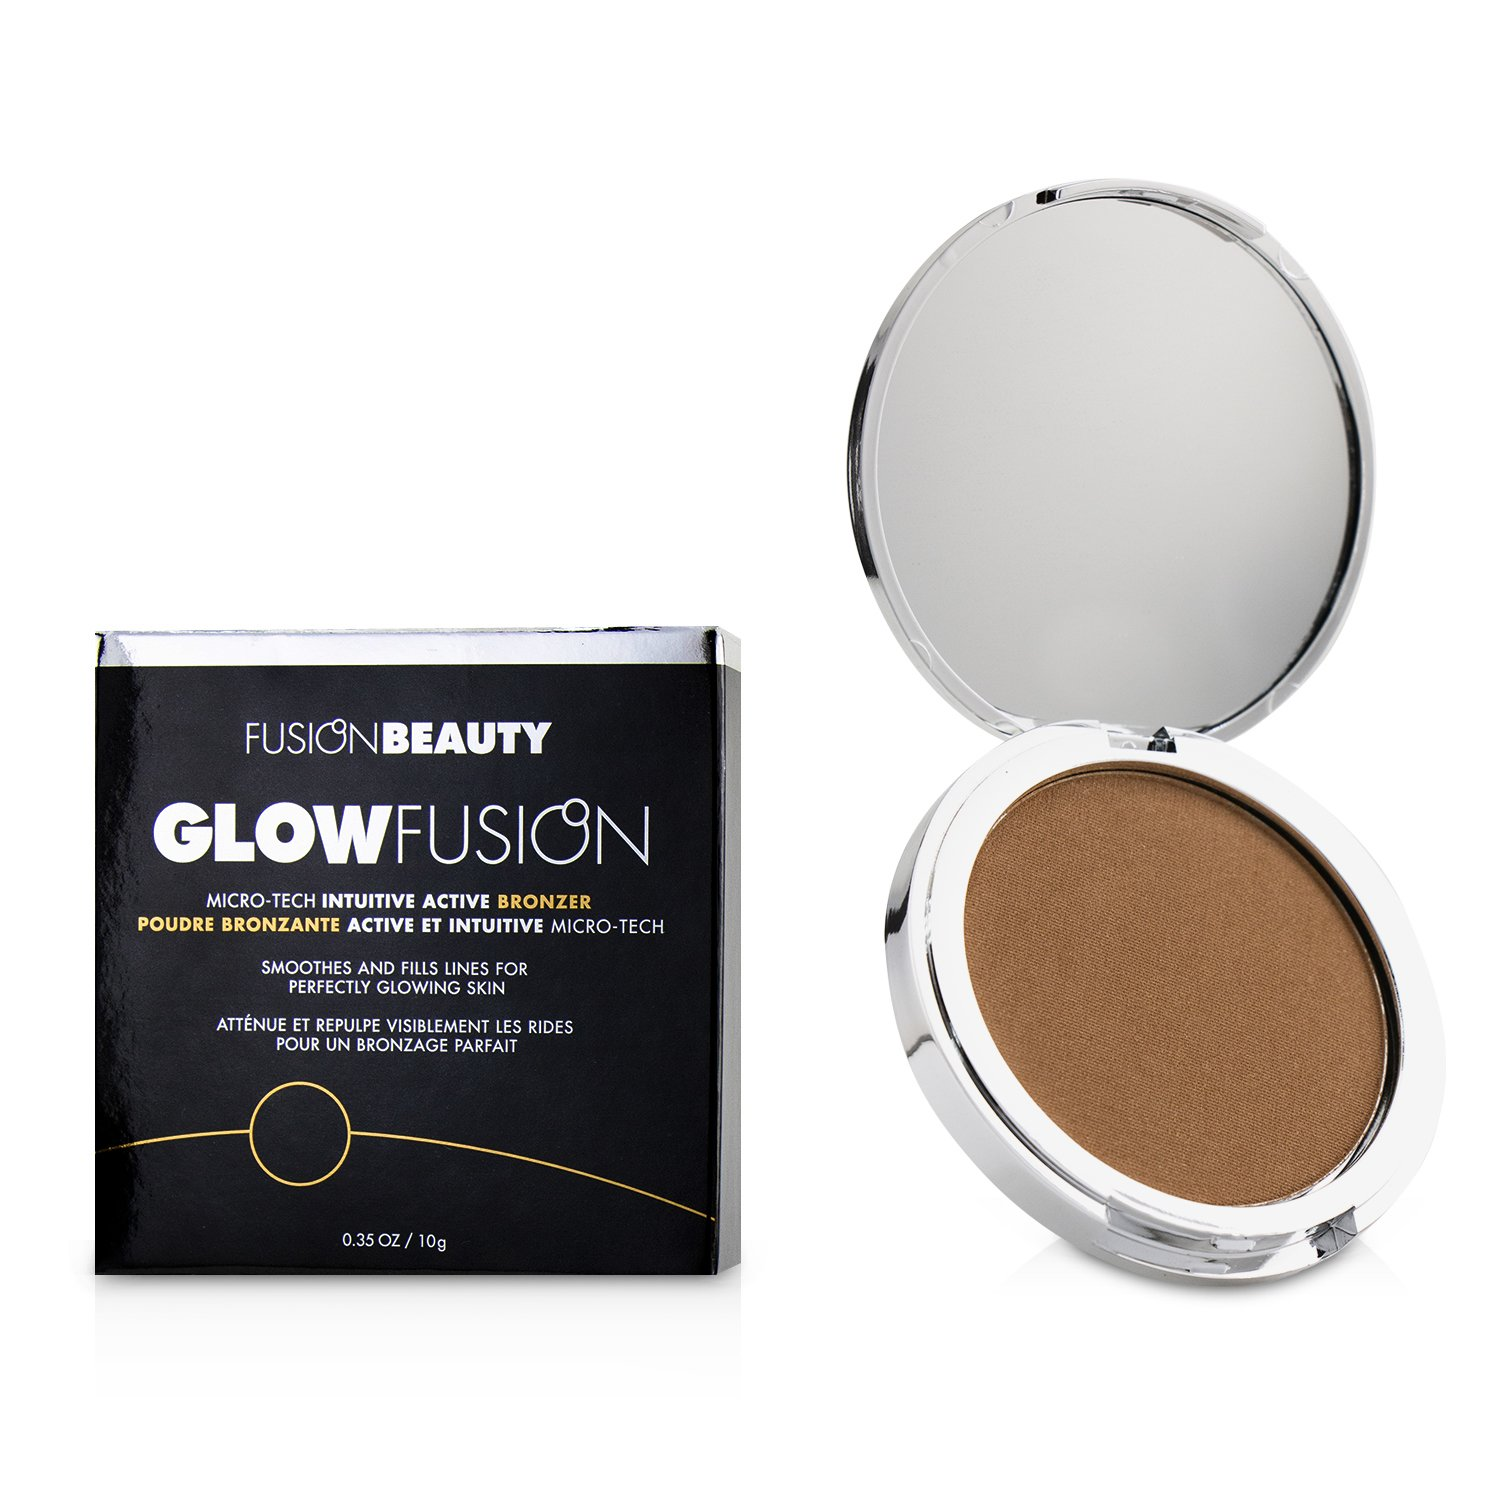 Fusion Beauty - 修容粉餅GlowFusion Micro Tech Intuitive Active Bronzer